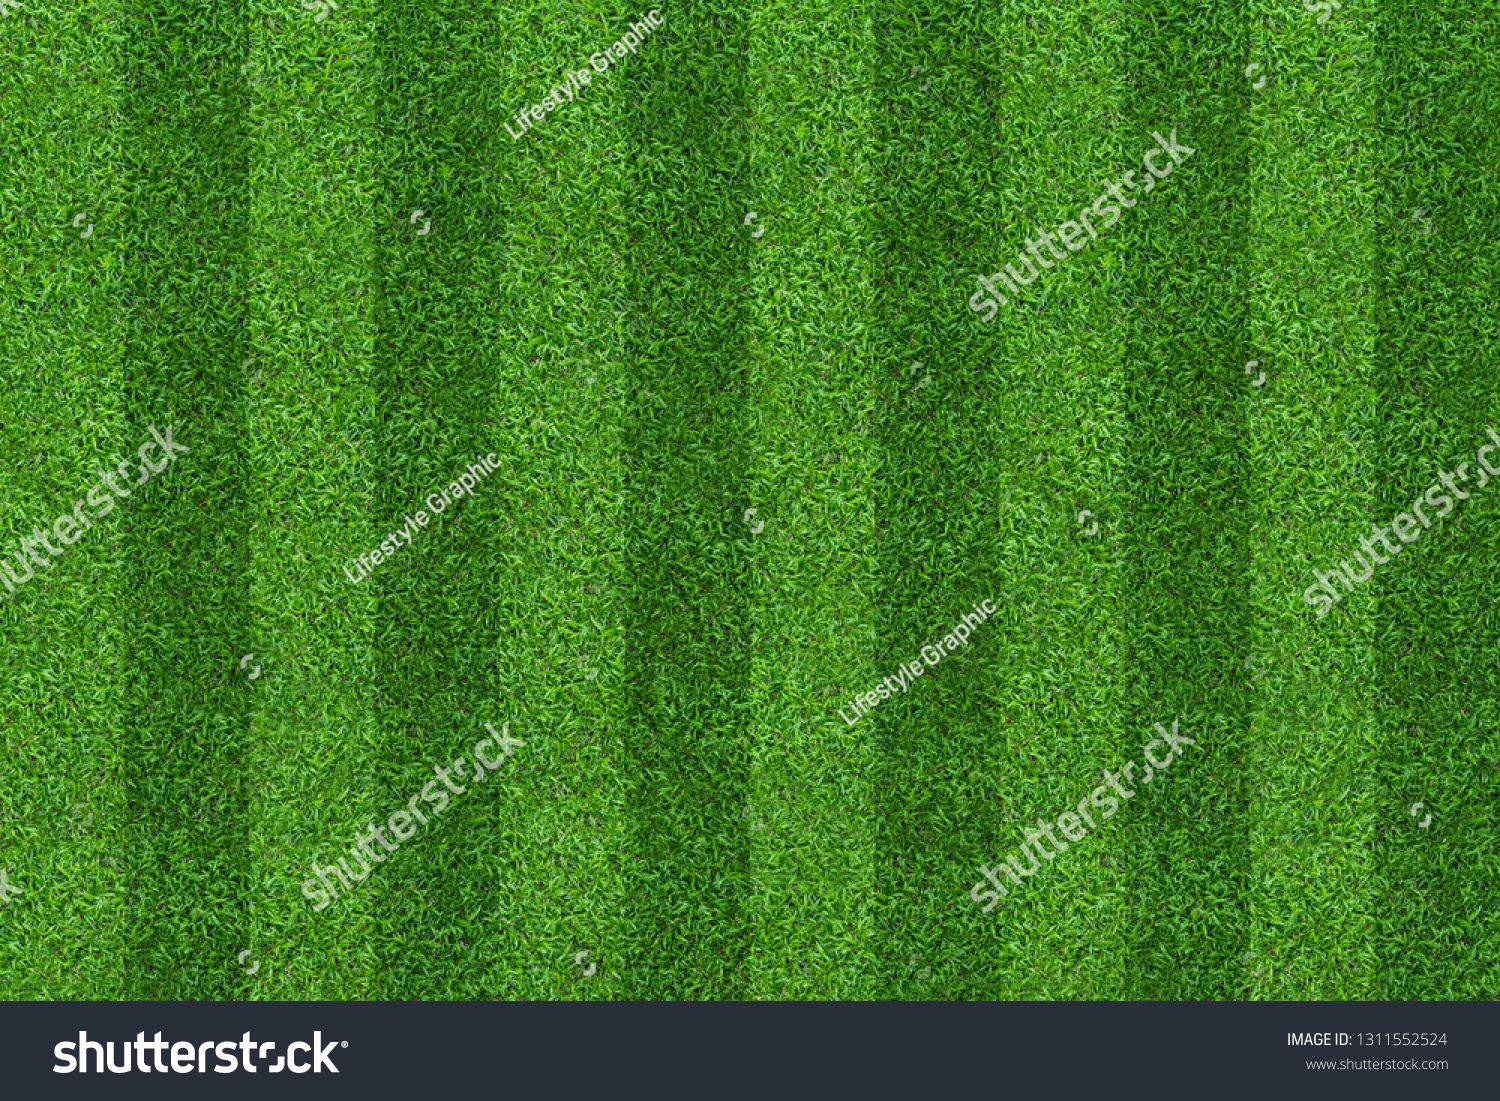 Green grass field background for soccer and football